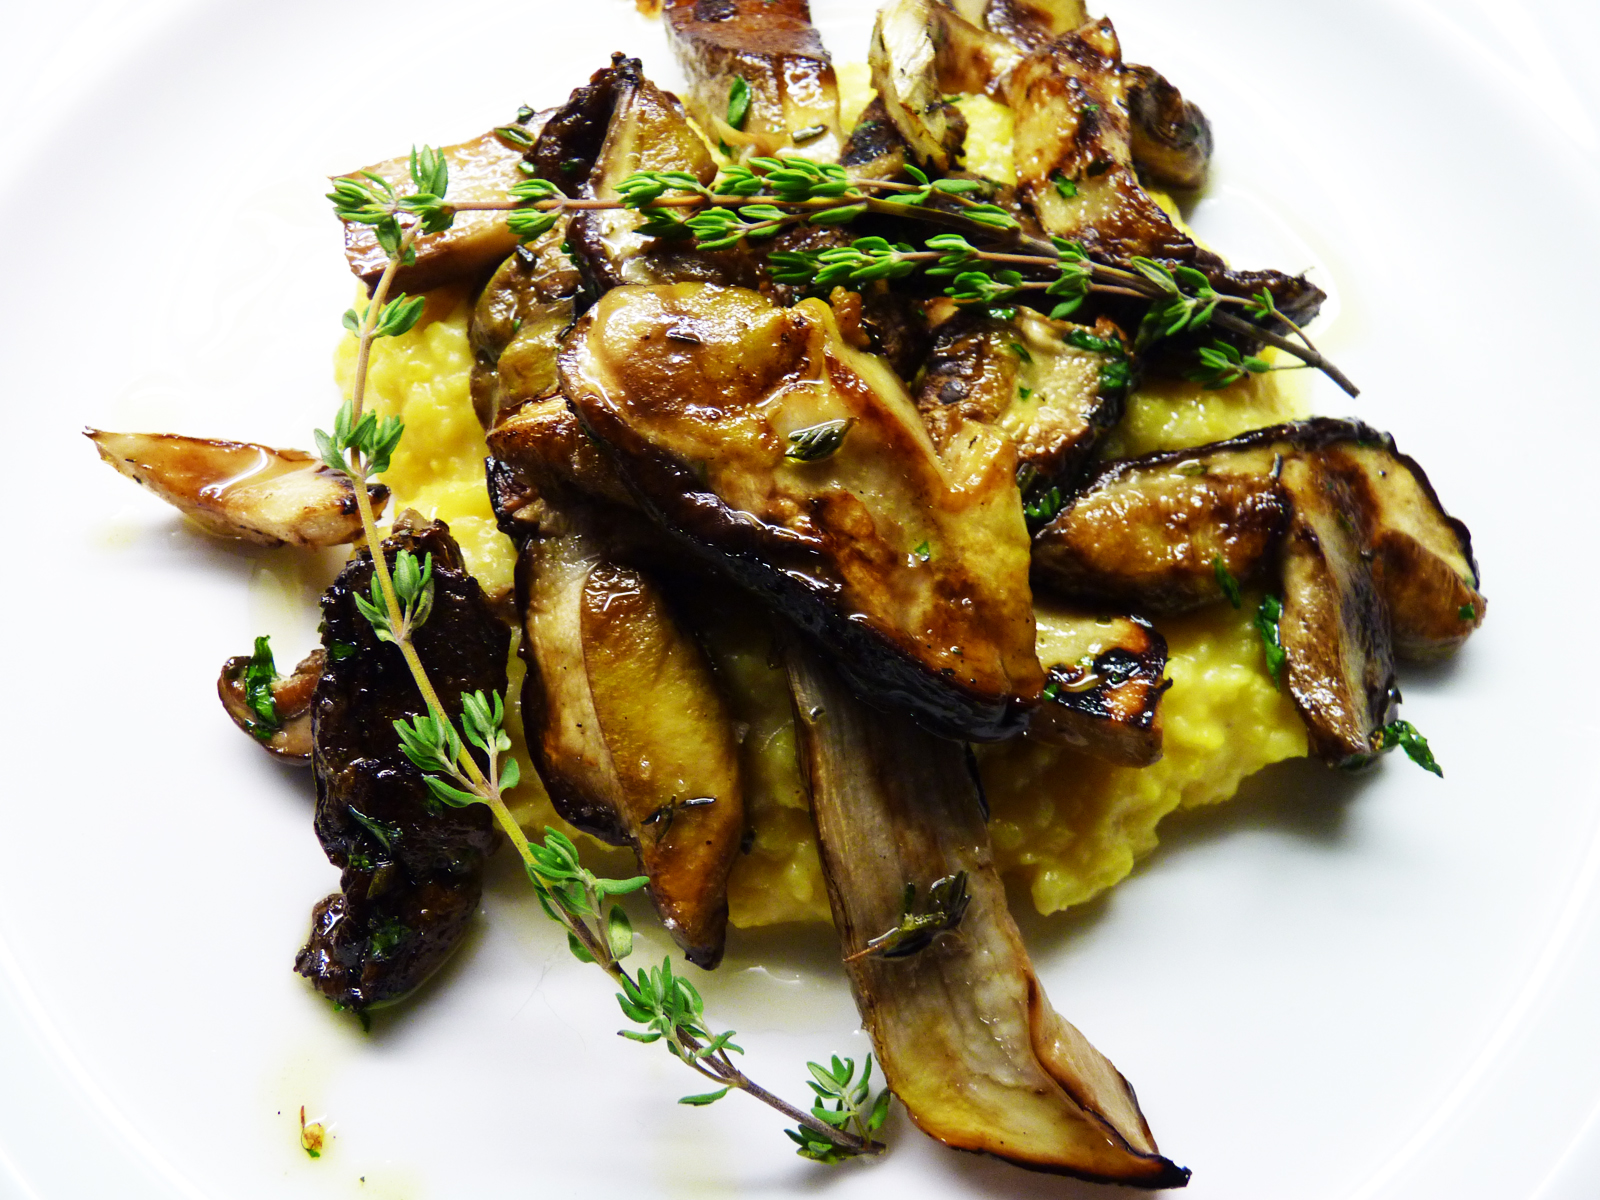 Grilled Porcini Mushrooms With Mint And Garlic Recipe ...